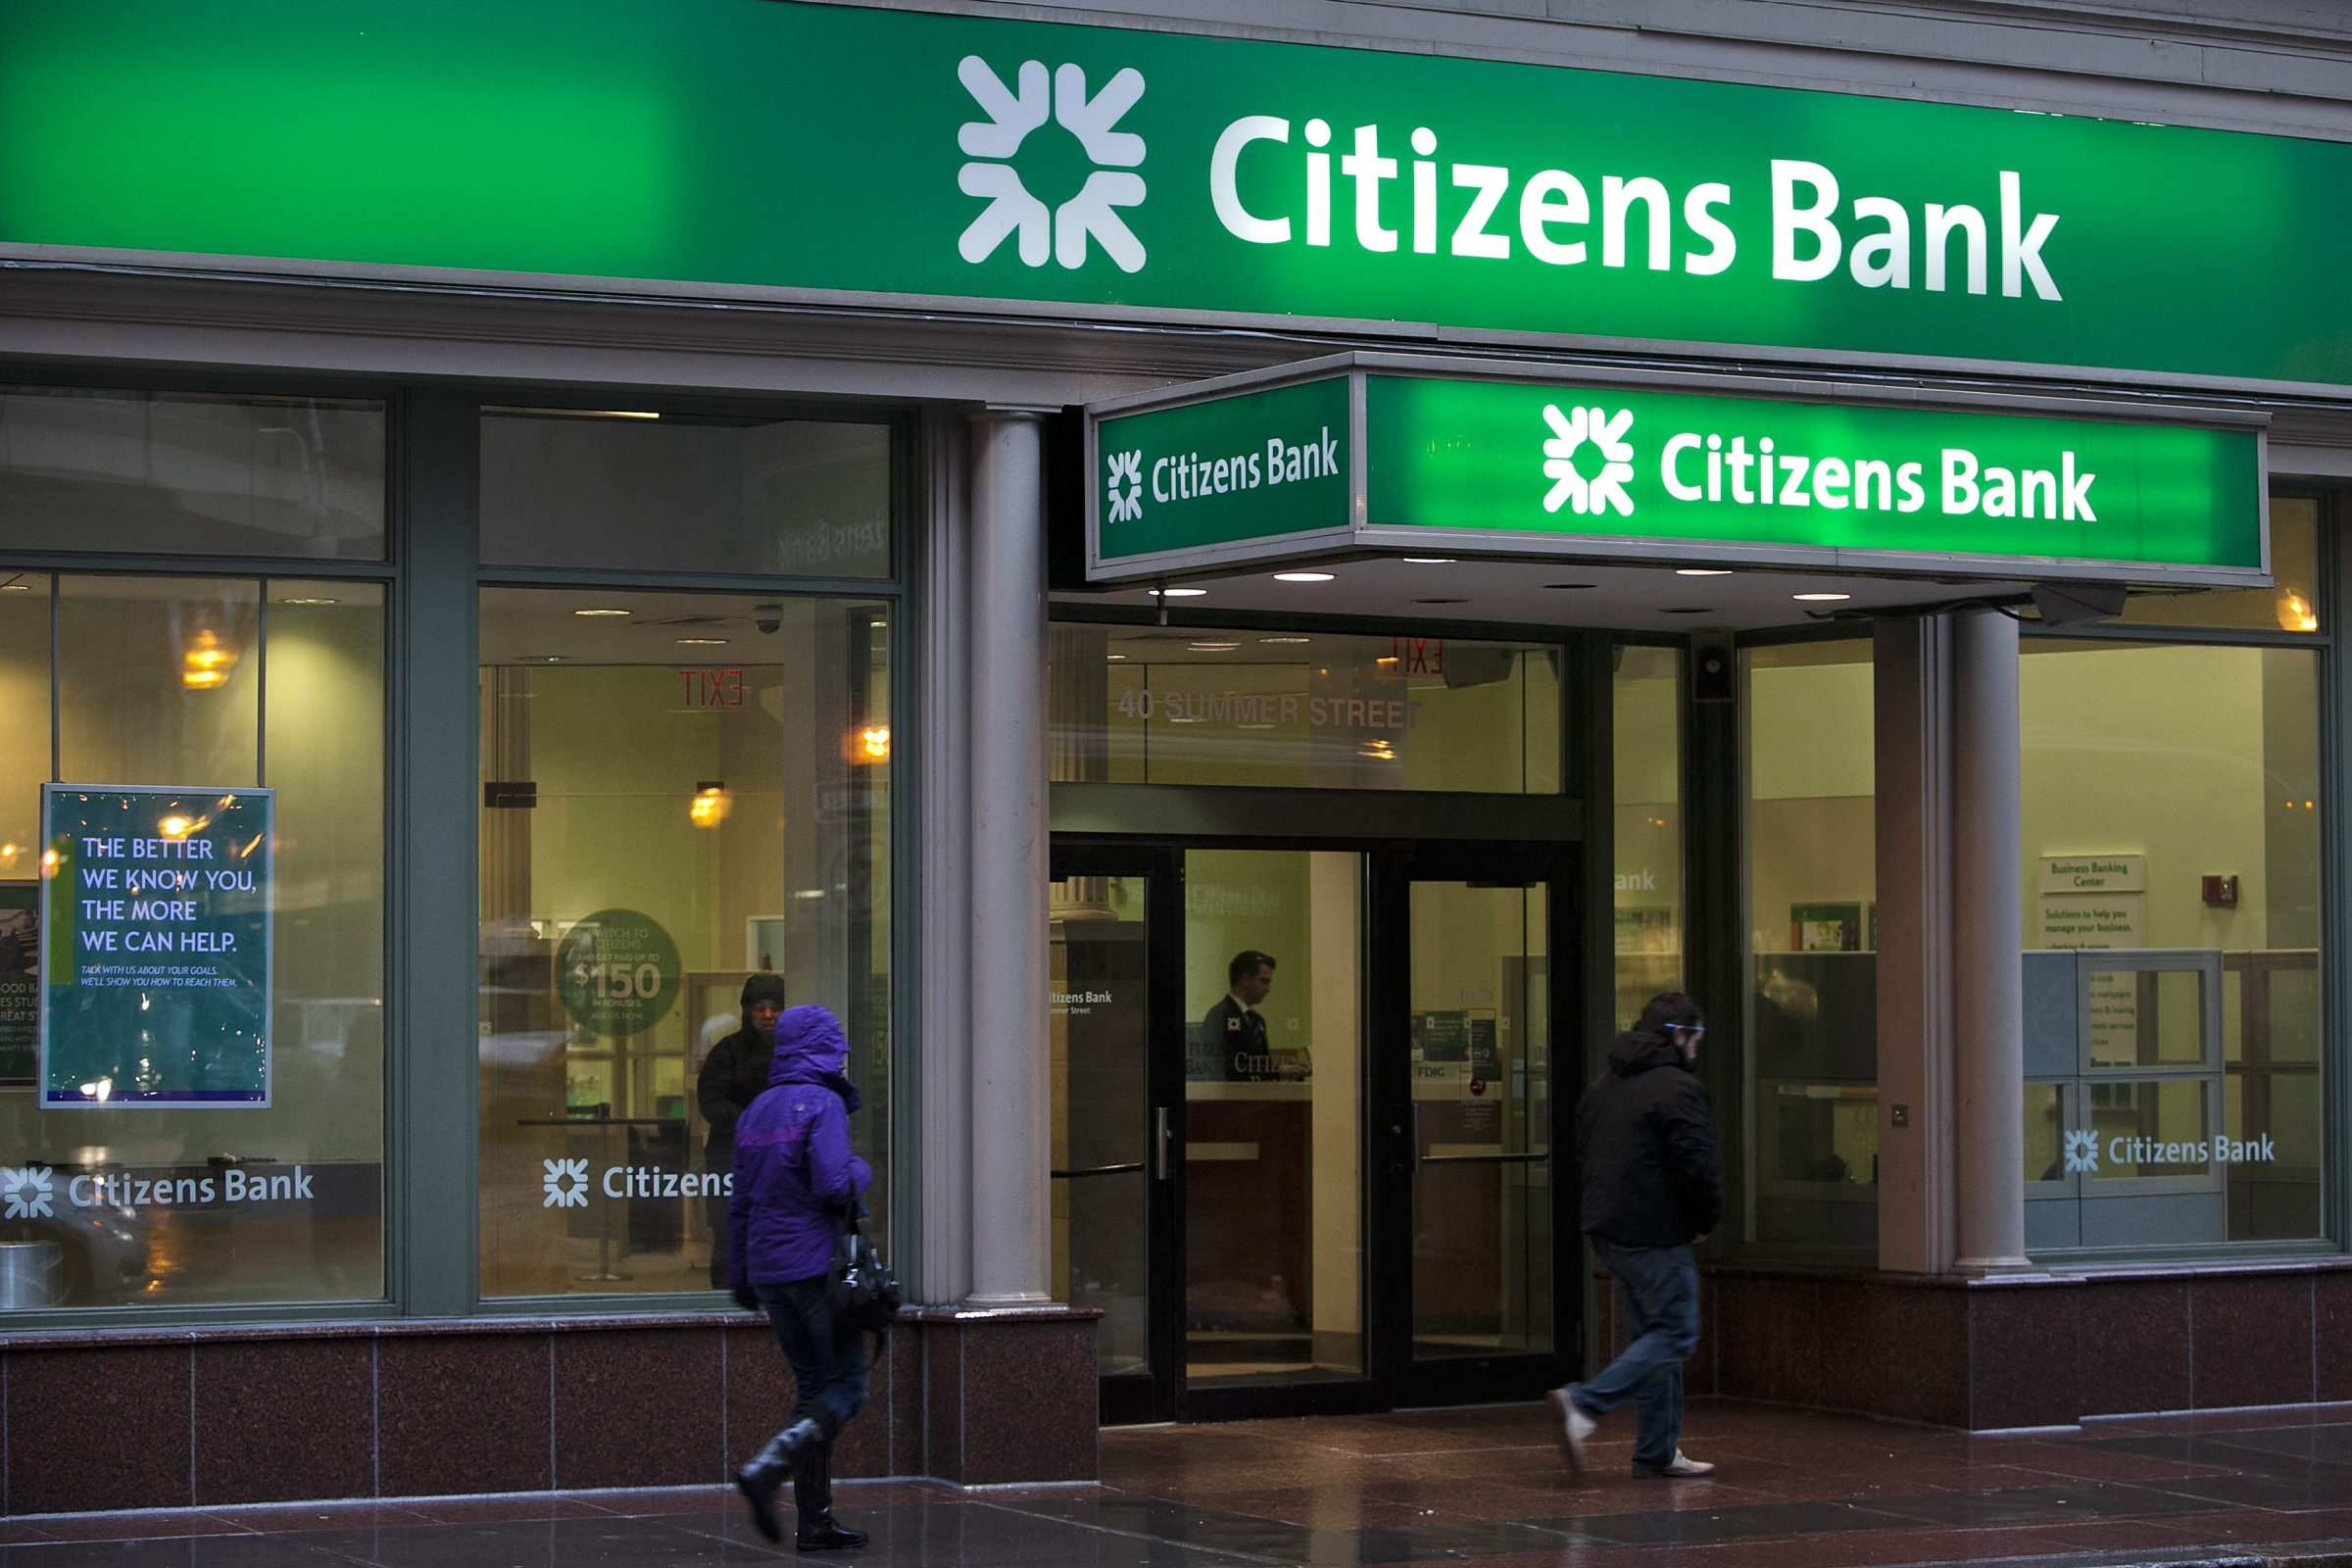 TD Bank is reportedly interested in purchasing Citizens Bank. The deal would create the fifth-largest bank in the U.S.